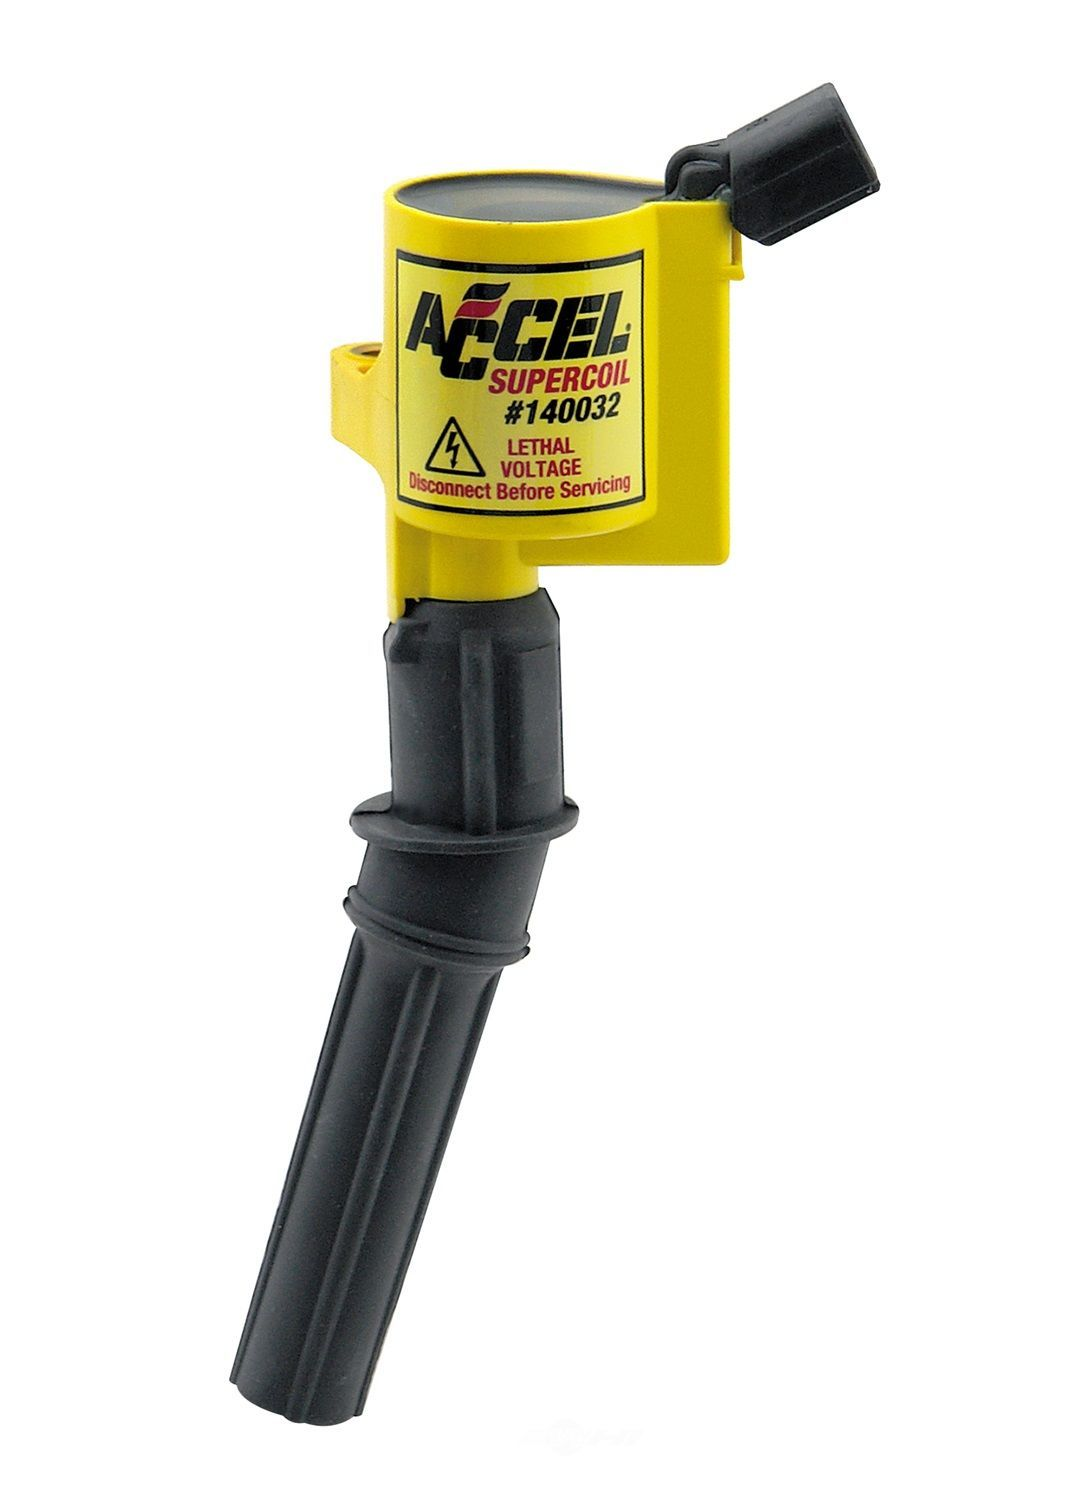 ACCEL - Supercoil Direct Ignition Coil - ACC 140032